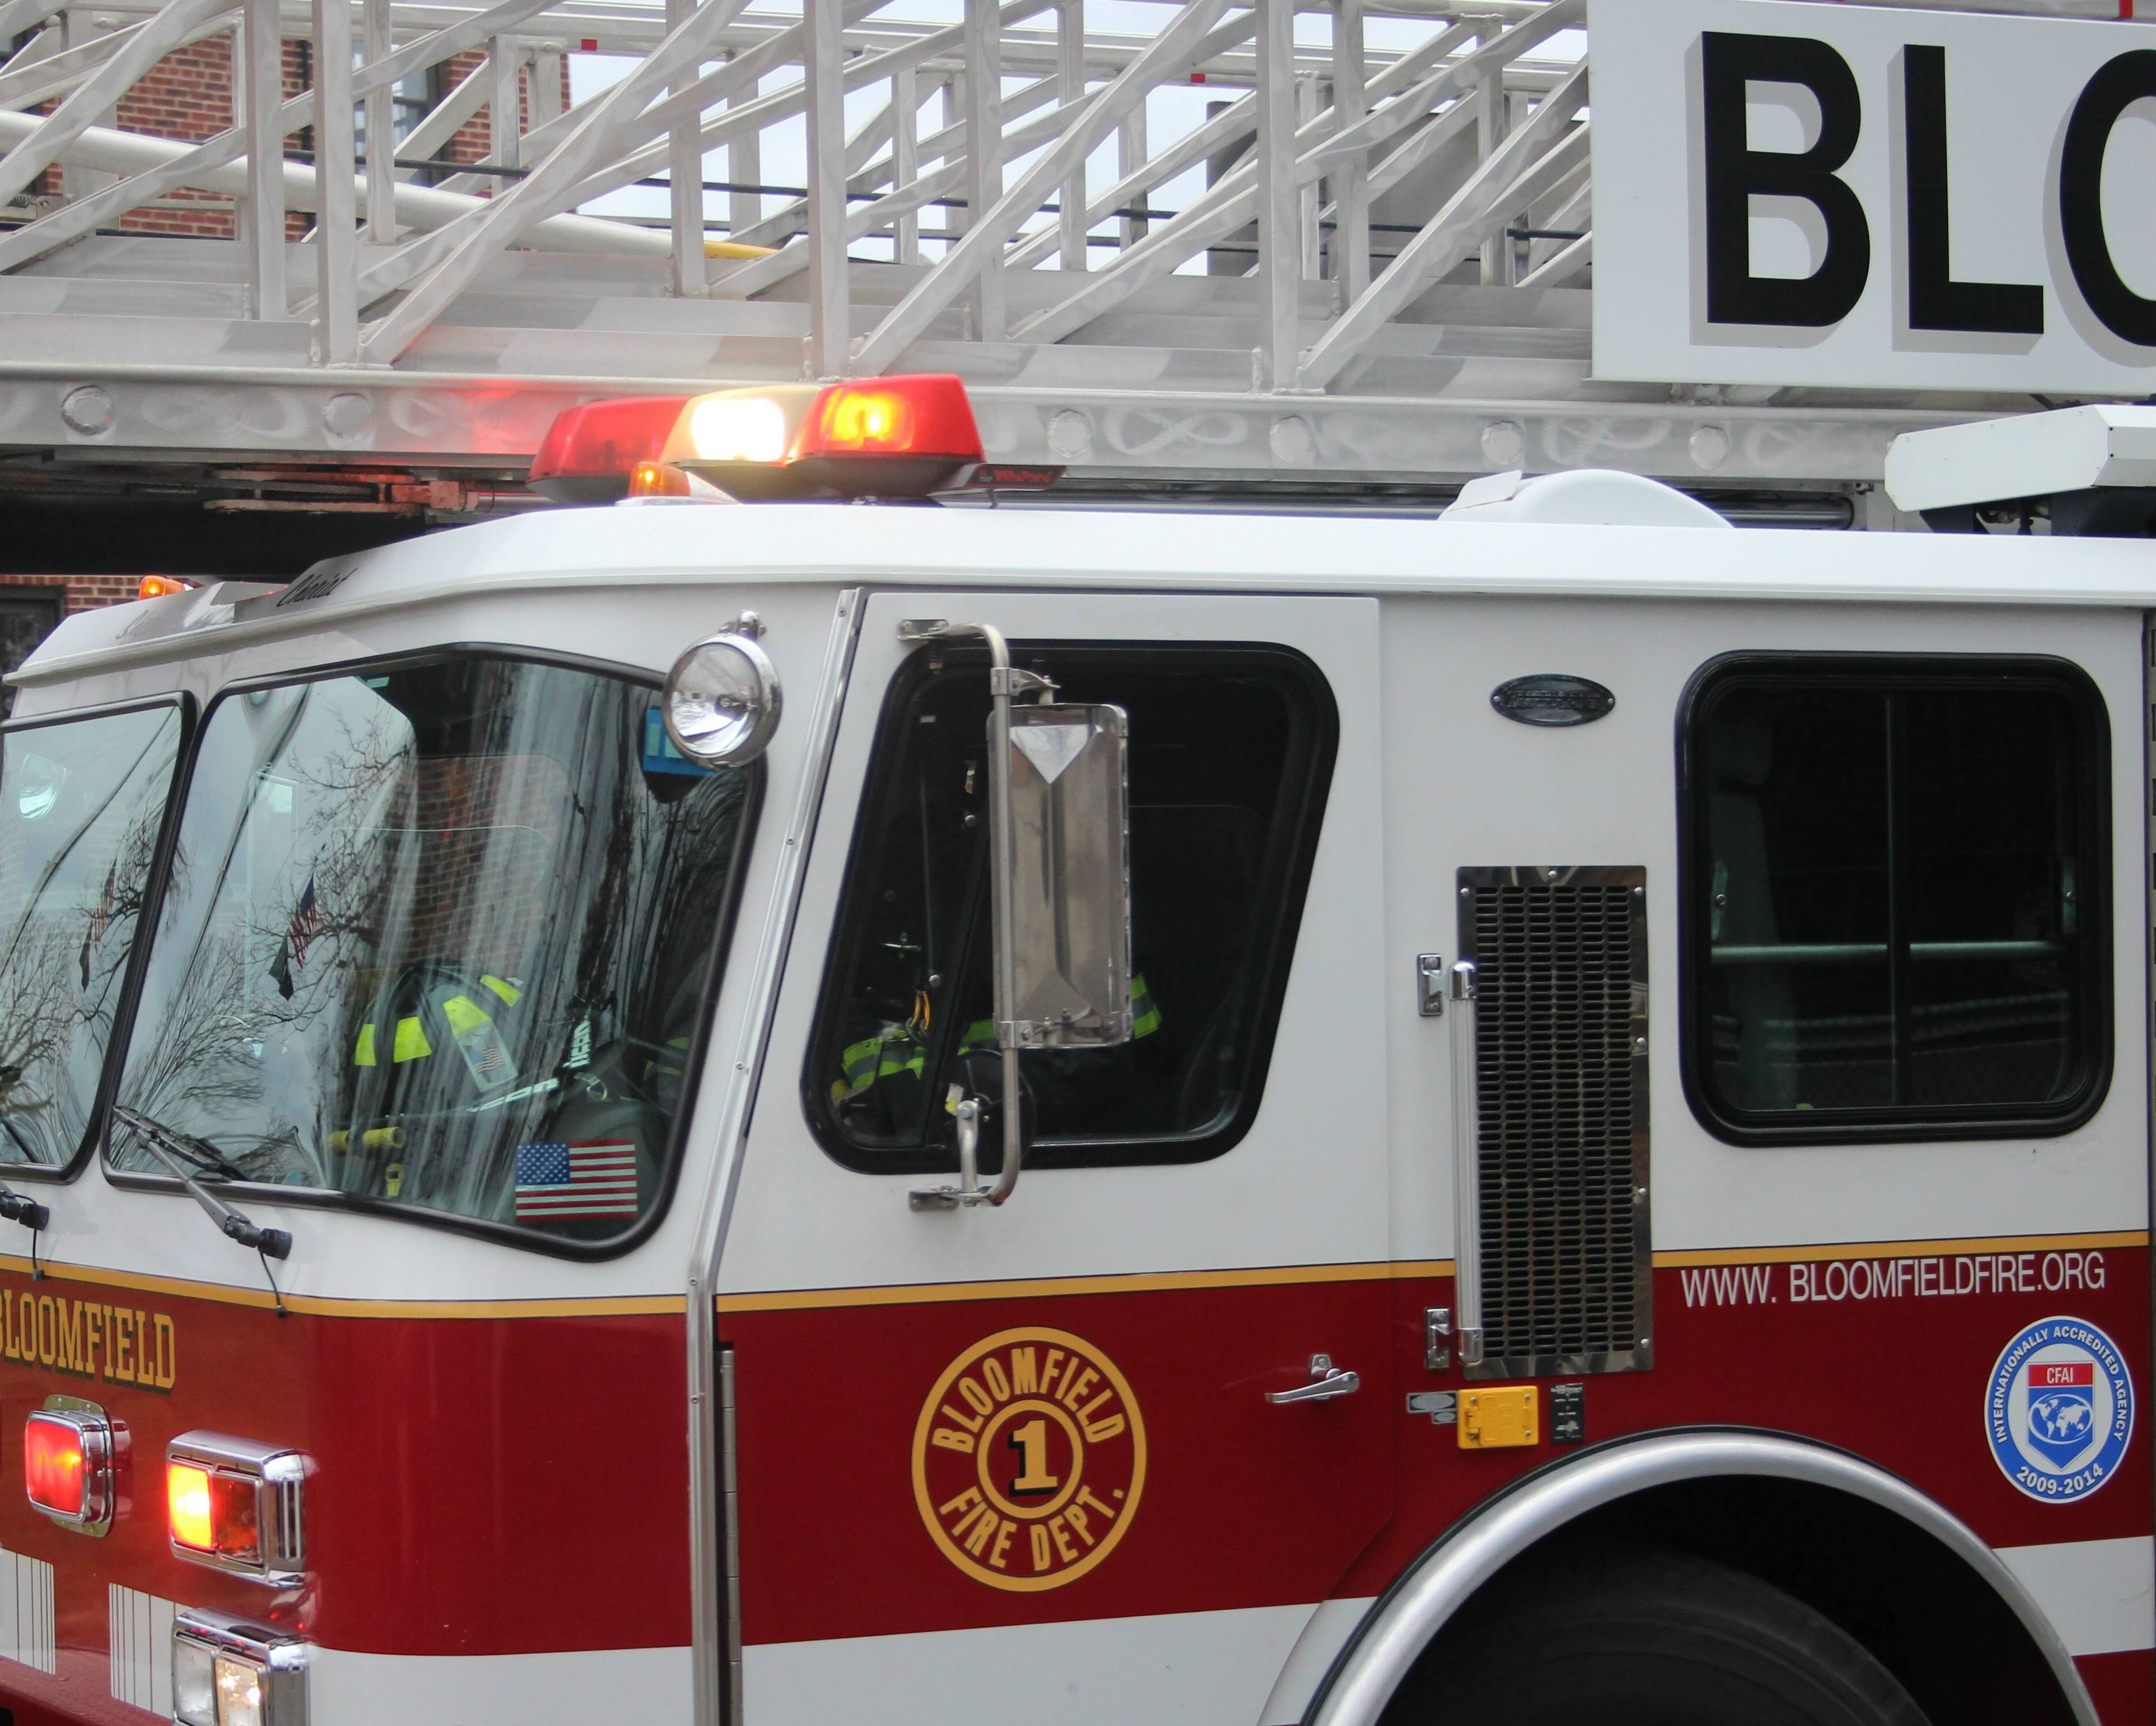 8c575af4dee0a21ef249_Bloomfield_Fire_Department_030.jpg